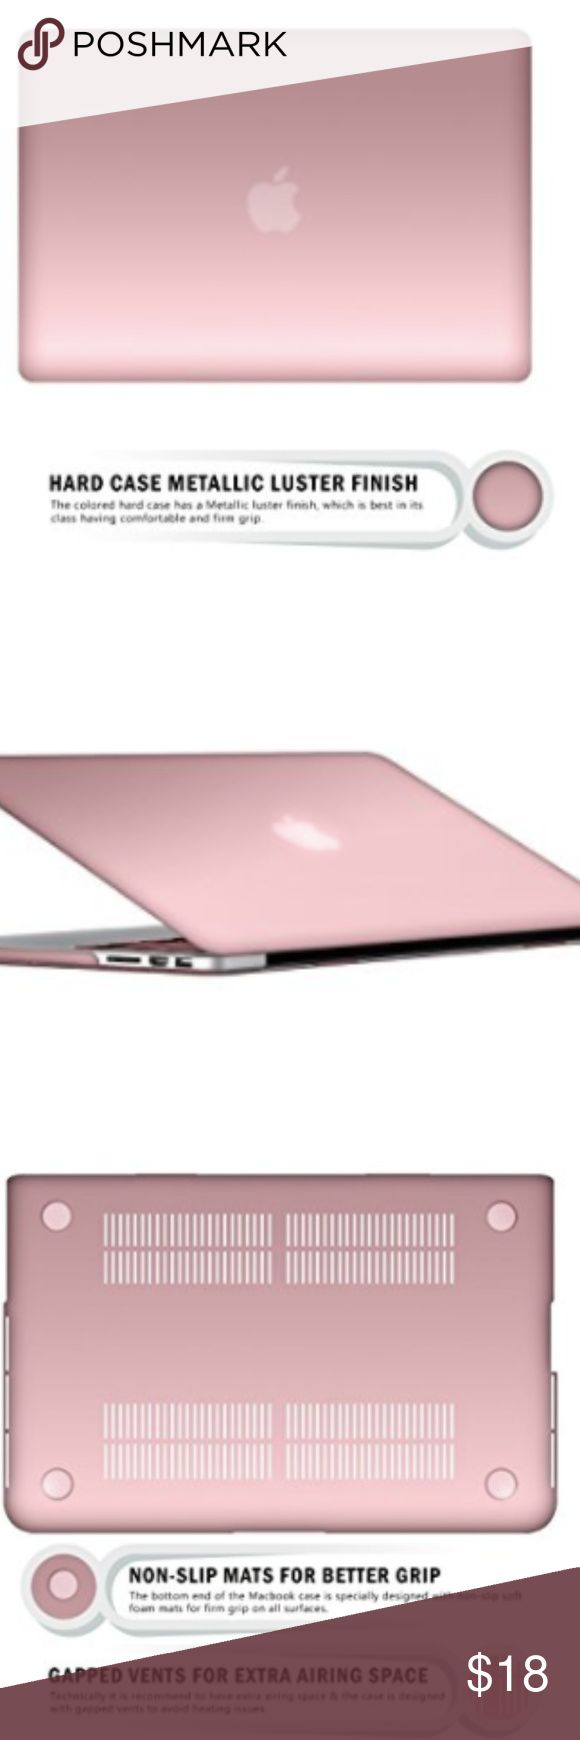 Rose gold MacBook Pro 13 inch Retina Display Case MacBook Pro 13 inch Retina Display Case, RiverPanda Lightweight Ultra Thin Metallic Finish Hard Plastic Case Cover. Never use, pretty color. Accessories Laptop Cases